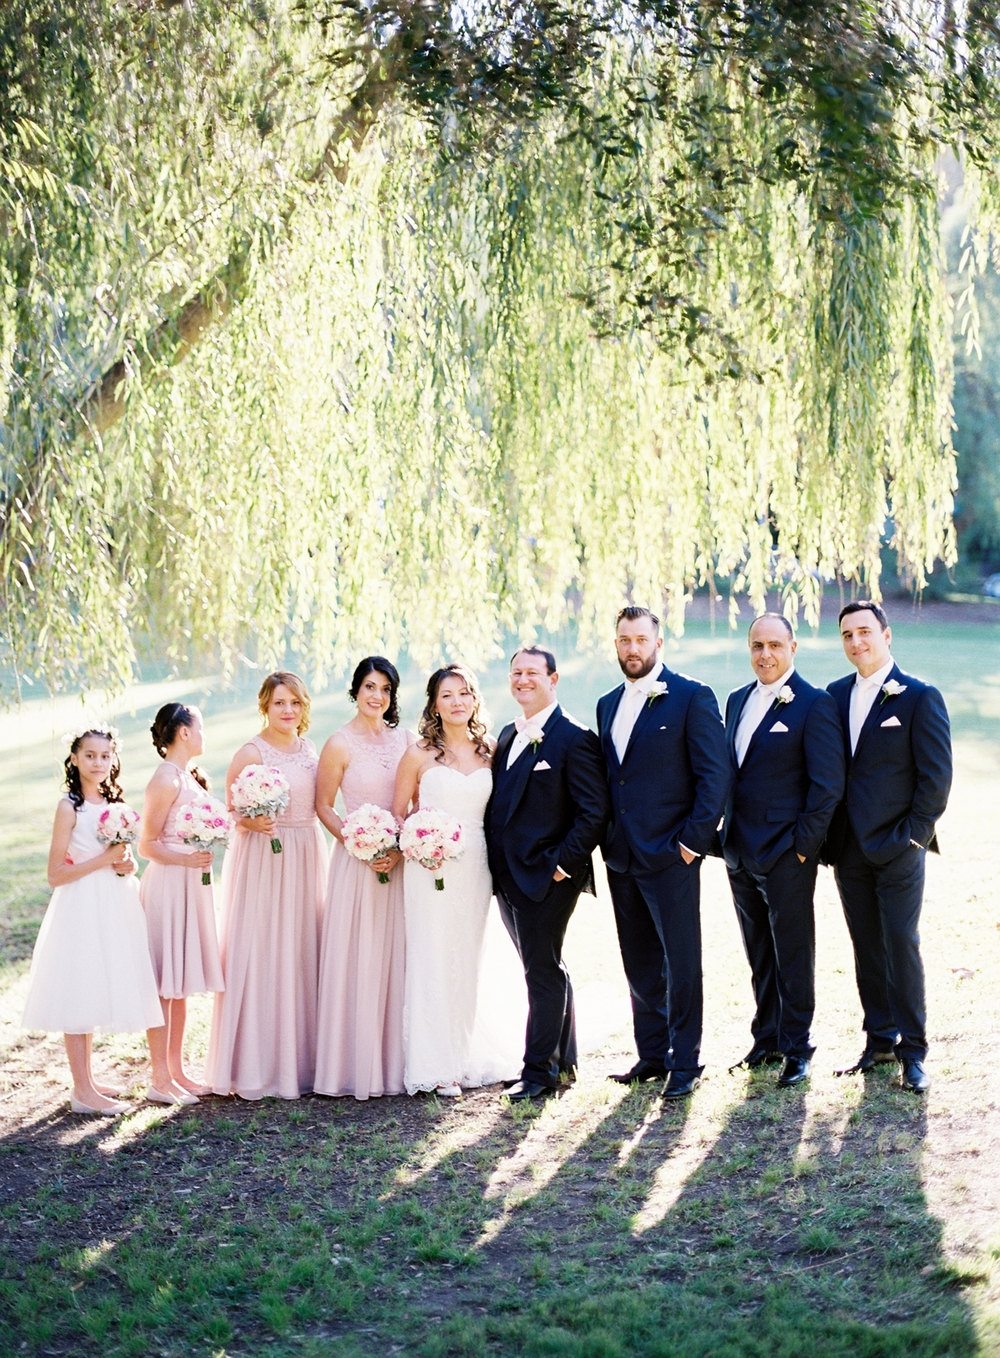 The Vine Grove Mudgee Wedding, Photography by Mr Edwards_1989.jpg